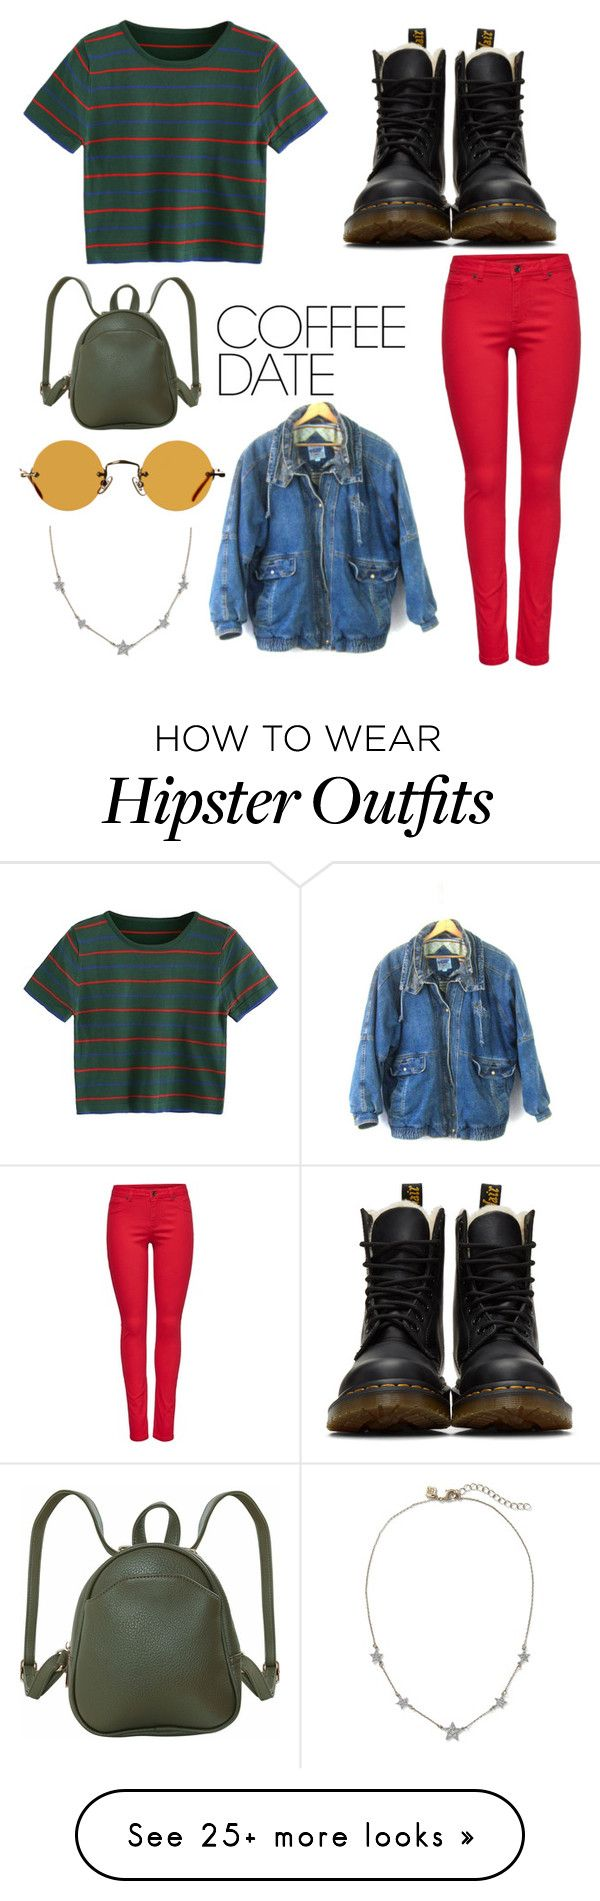 """""""Coffee Date Look 90's"""" by kailxx on Polyvore featuring M&Co, Dr. Martens, Humble Chic, Hakusan and CoffeeDate"""